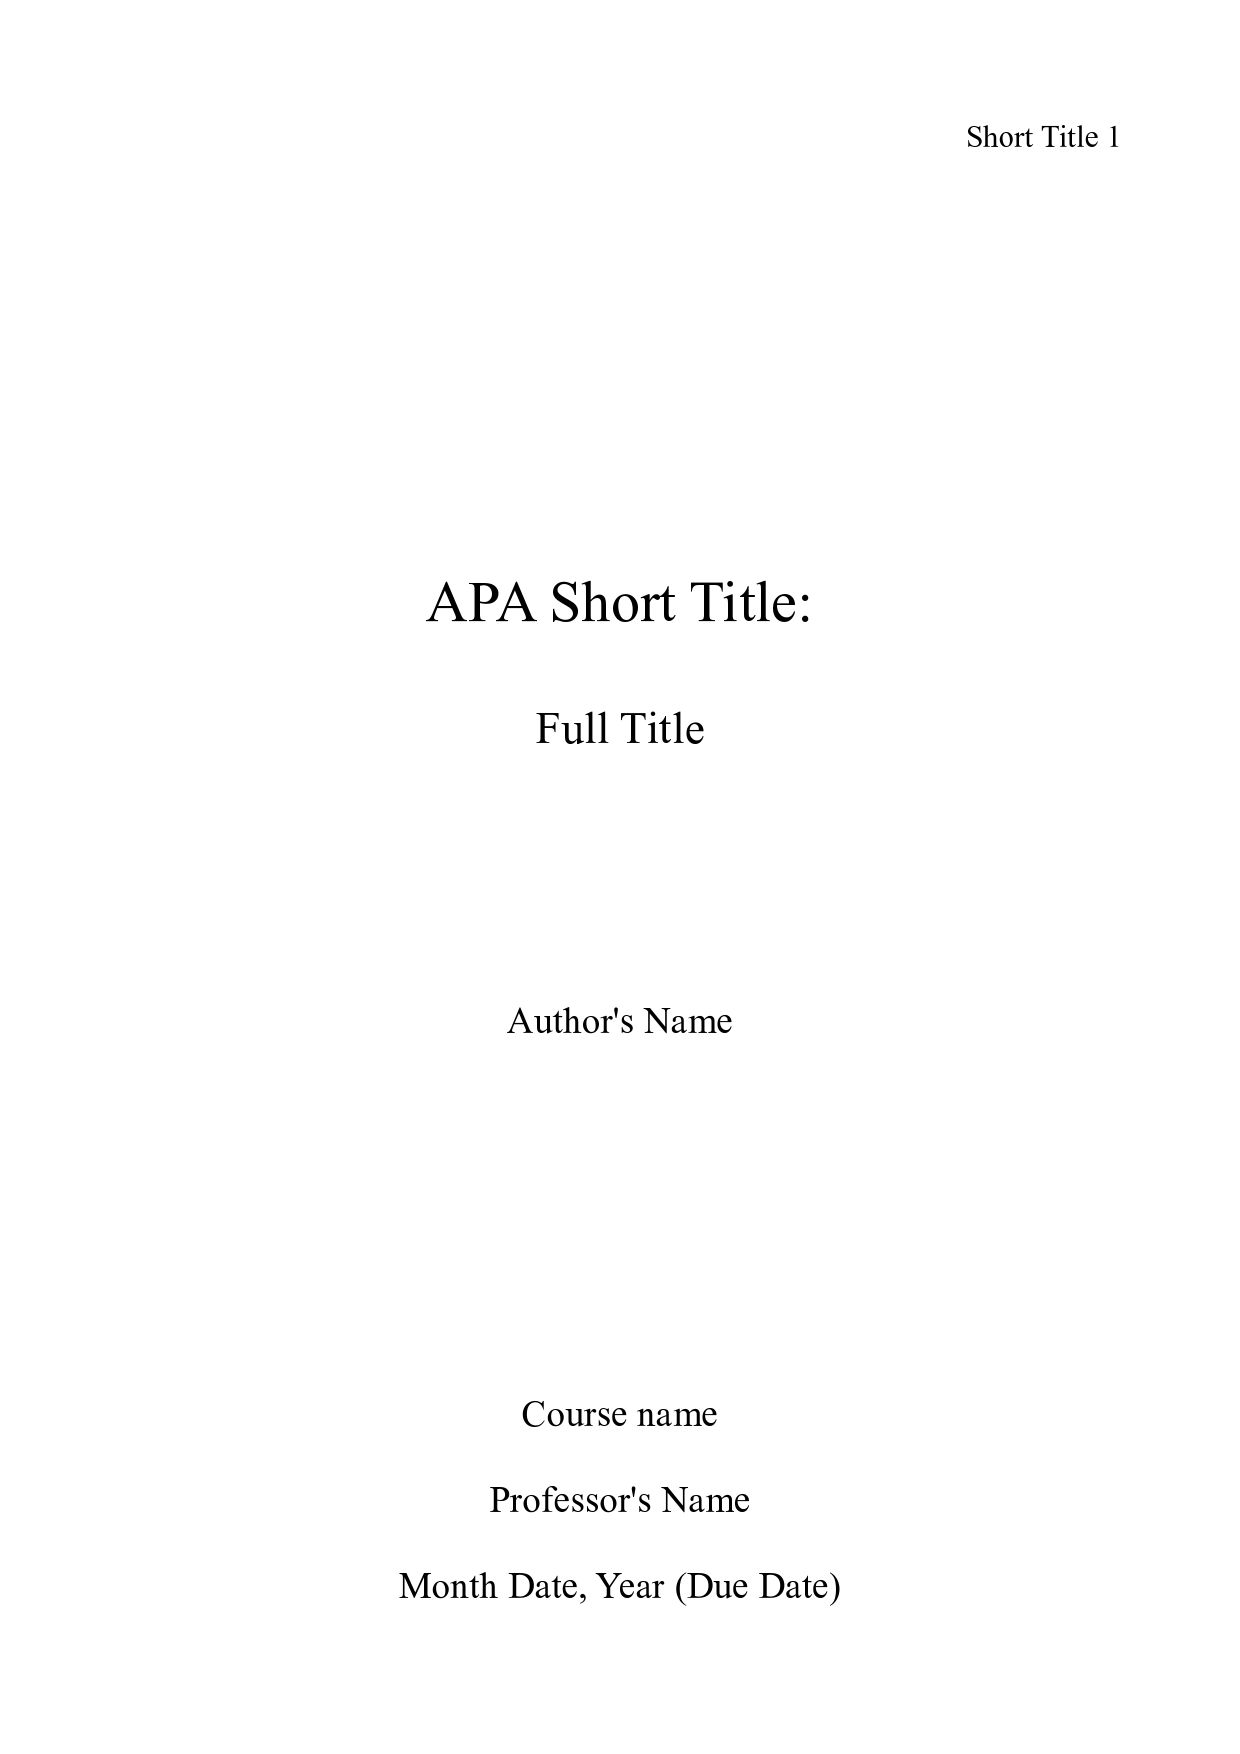 003 Research Paper Cover Page Apa Excellent Layout Format Example Style Full